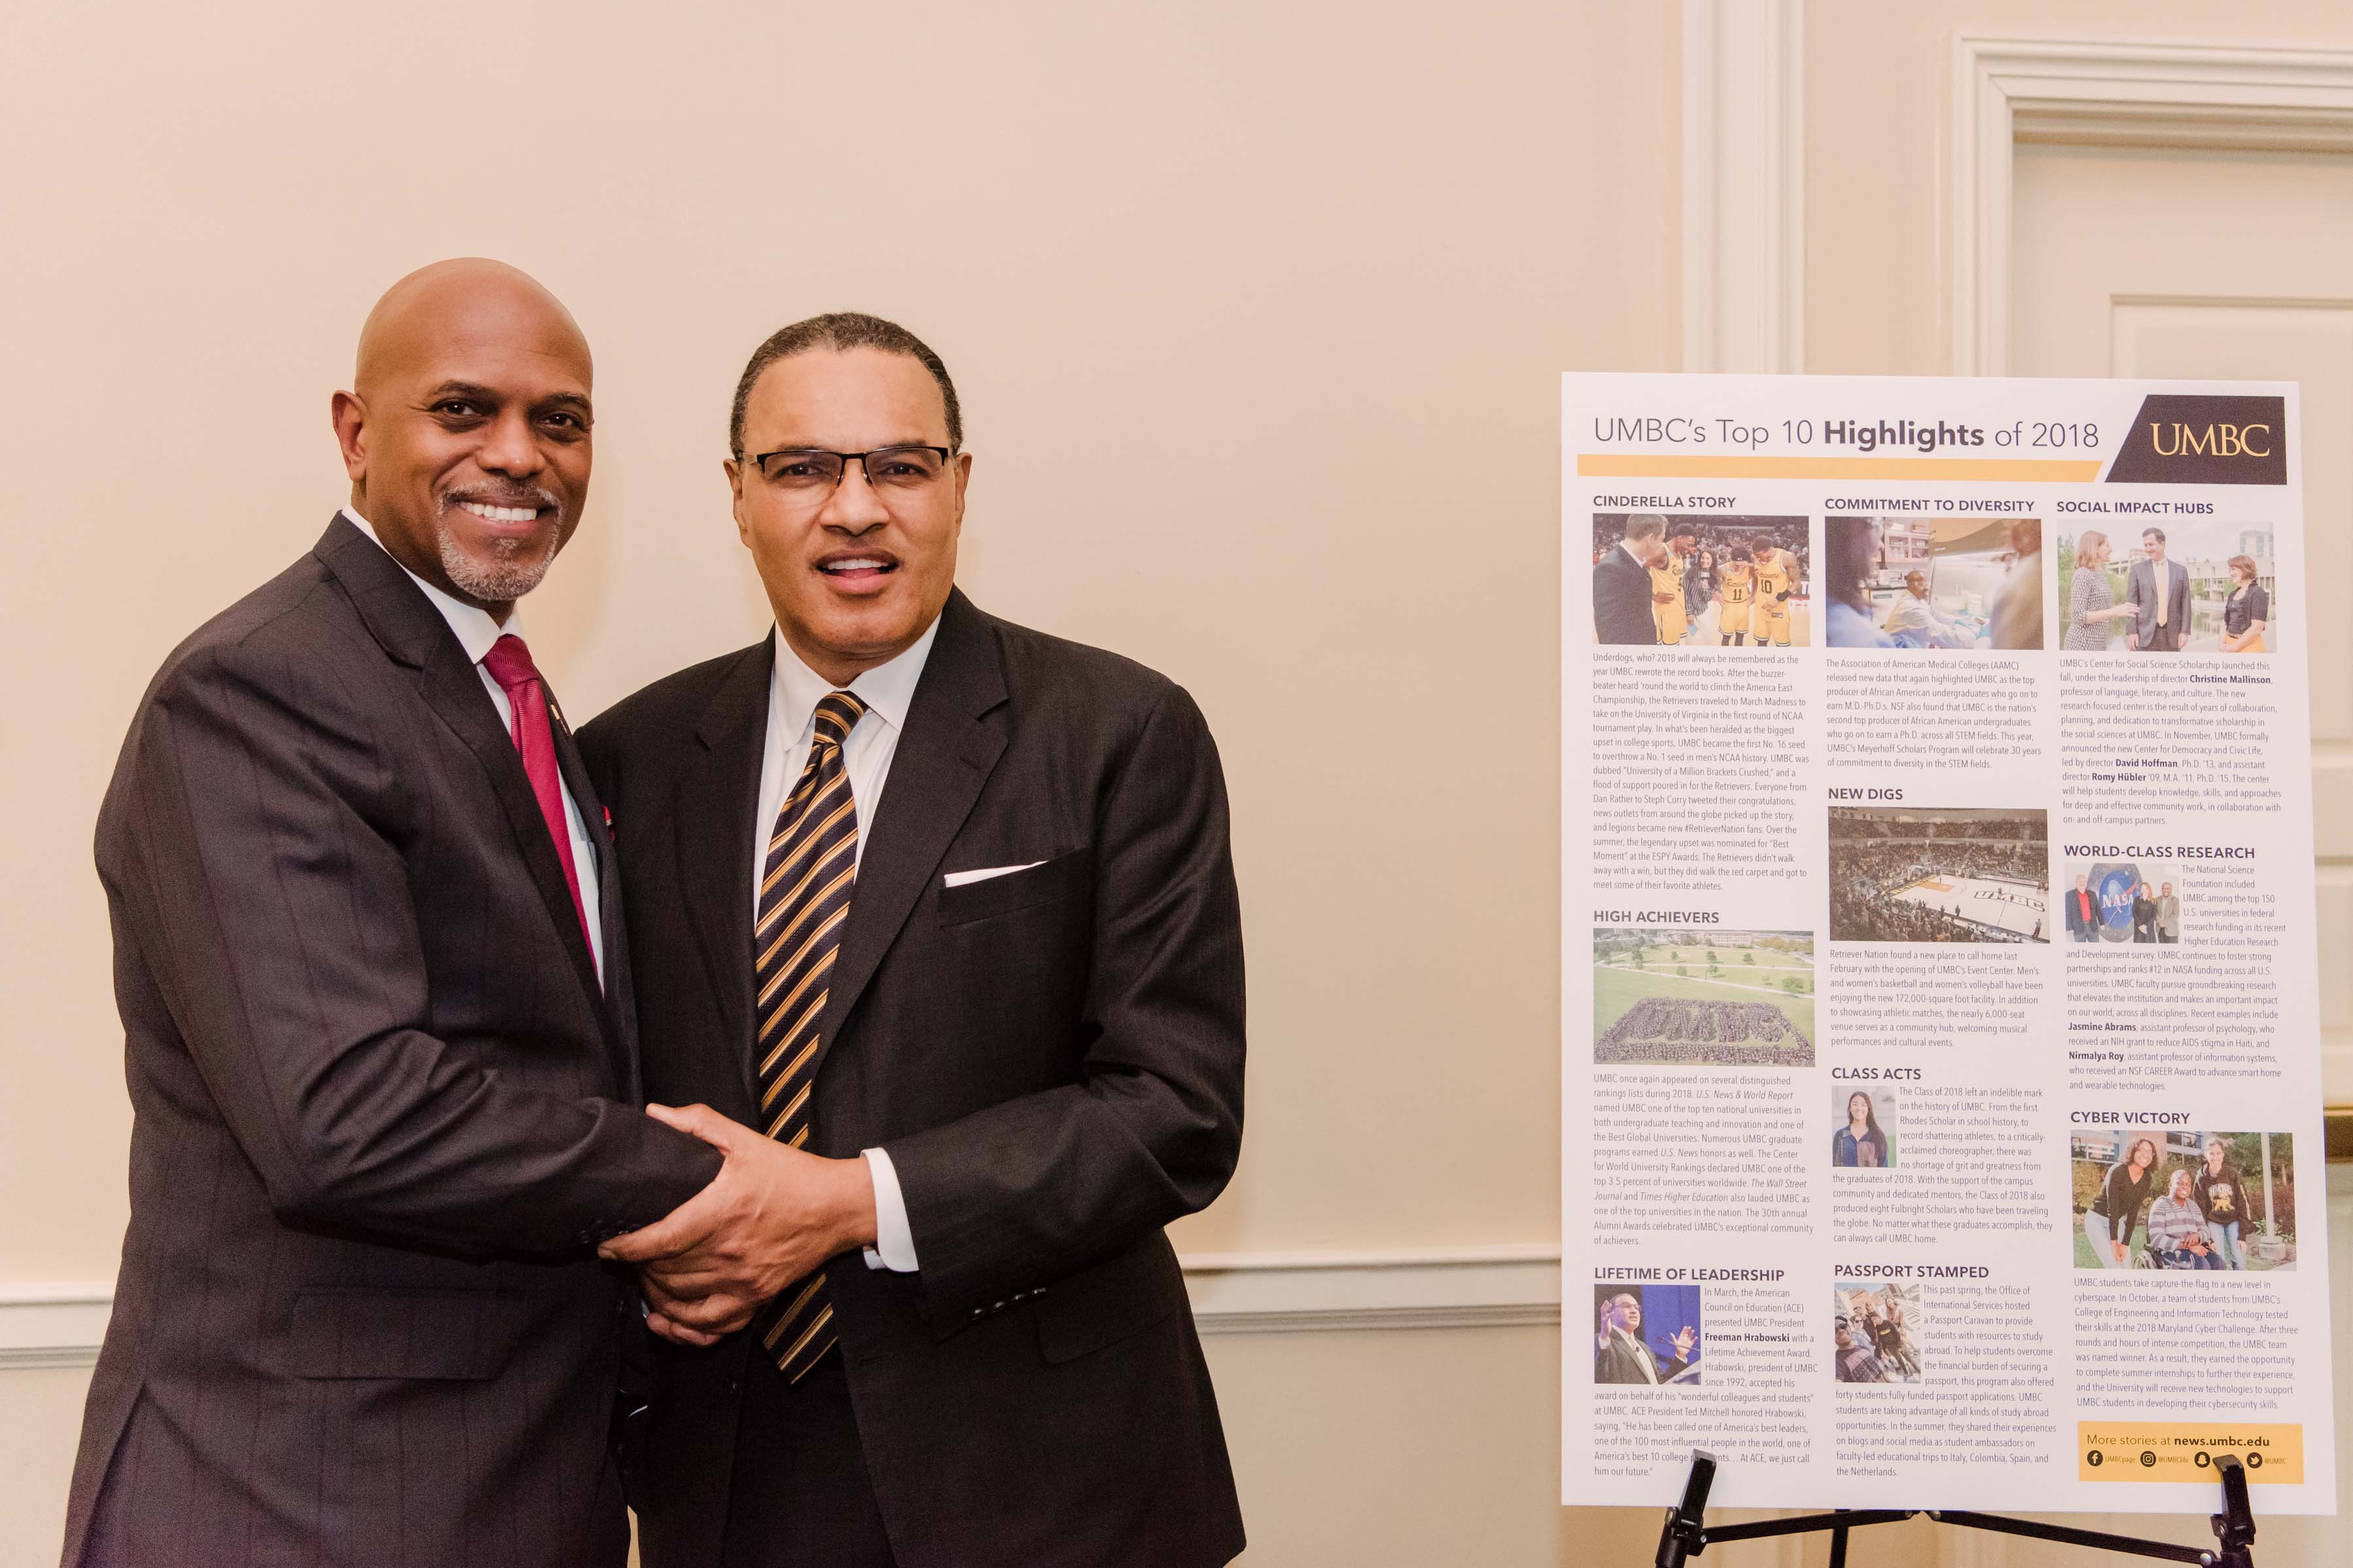 Hrabowski and other man shake hands and smile at camera UMBC's top 10 highlights sign in background